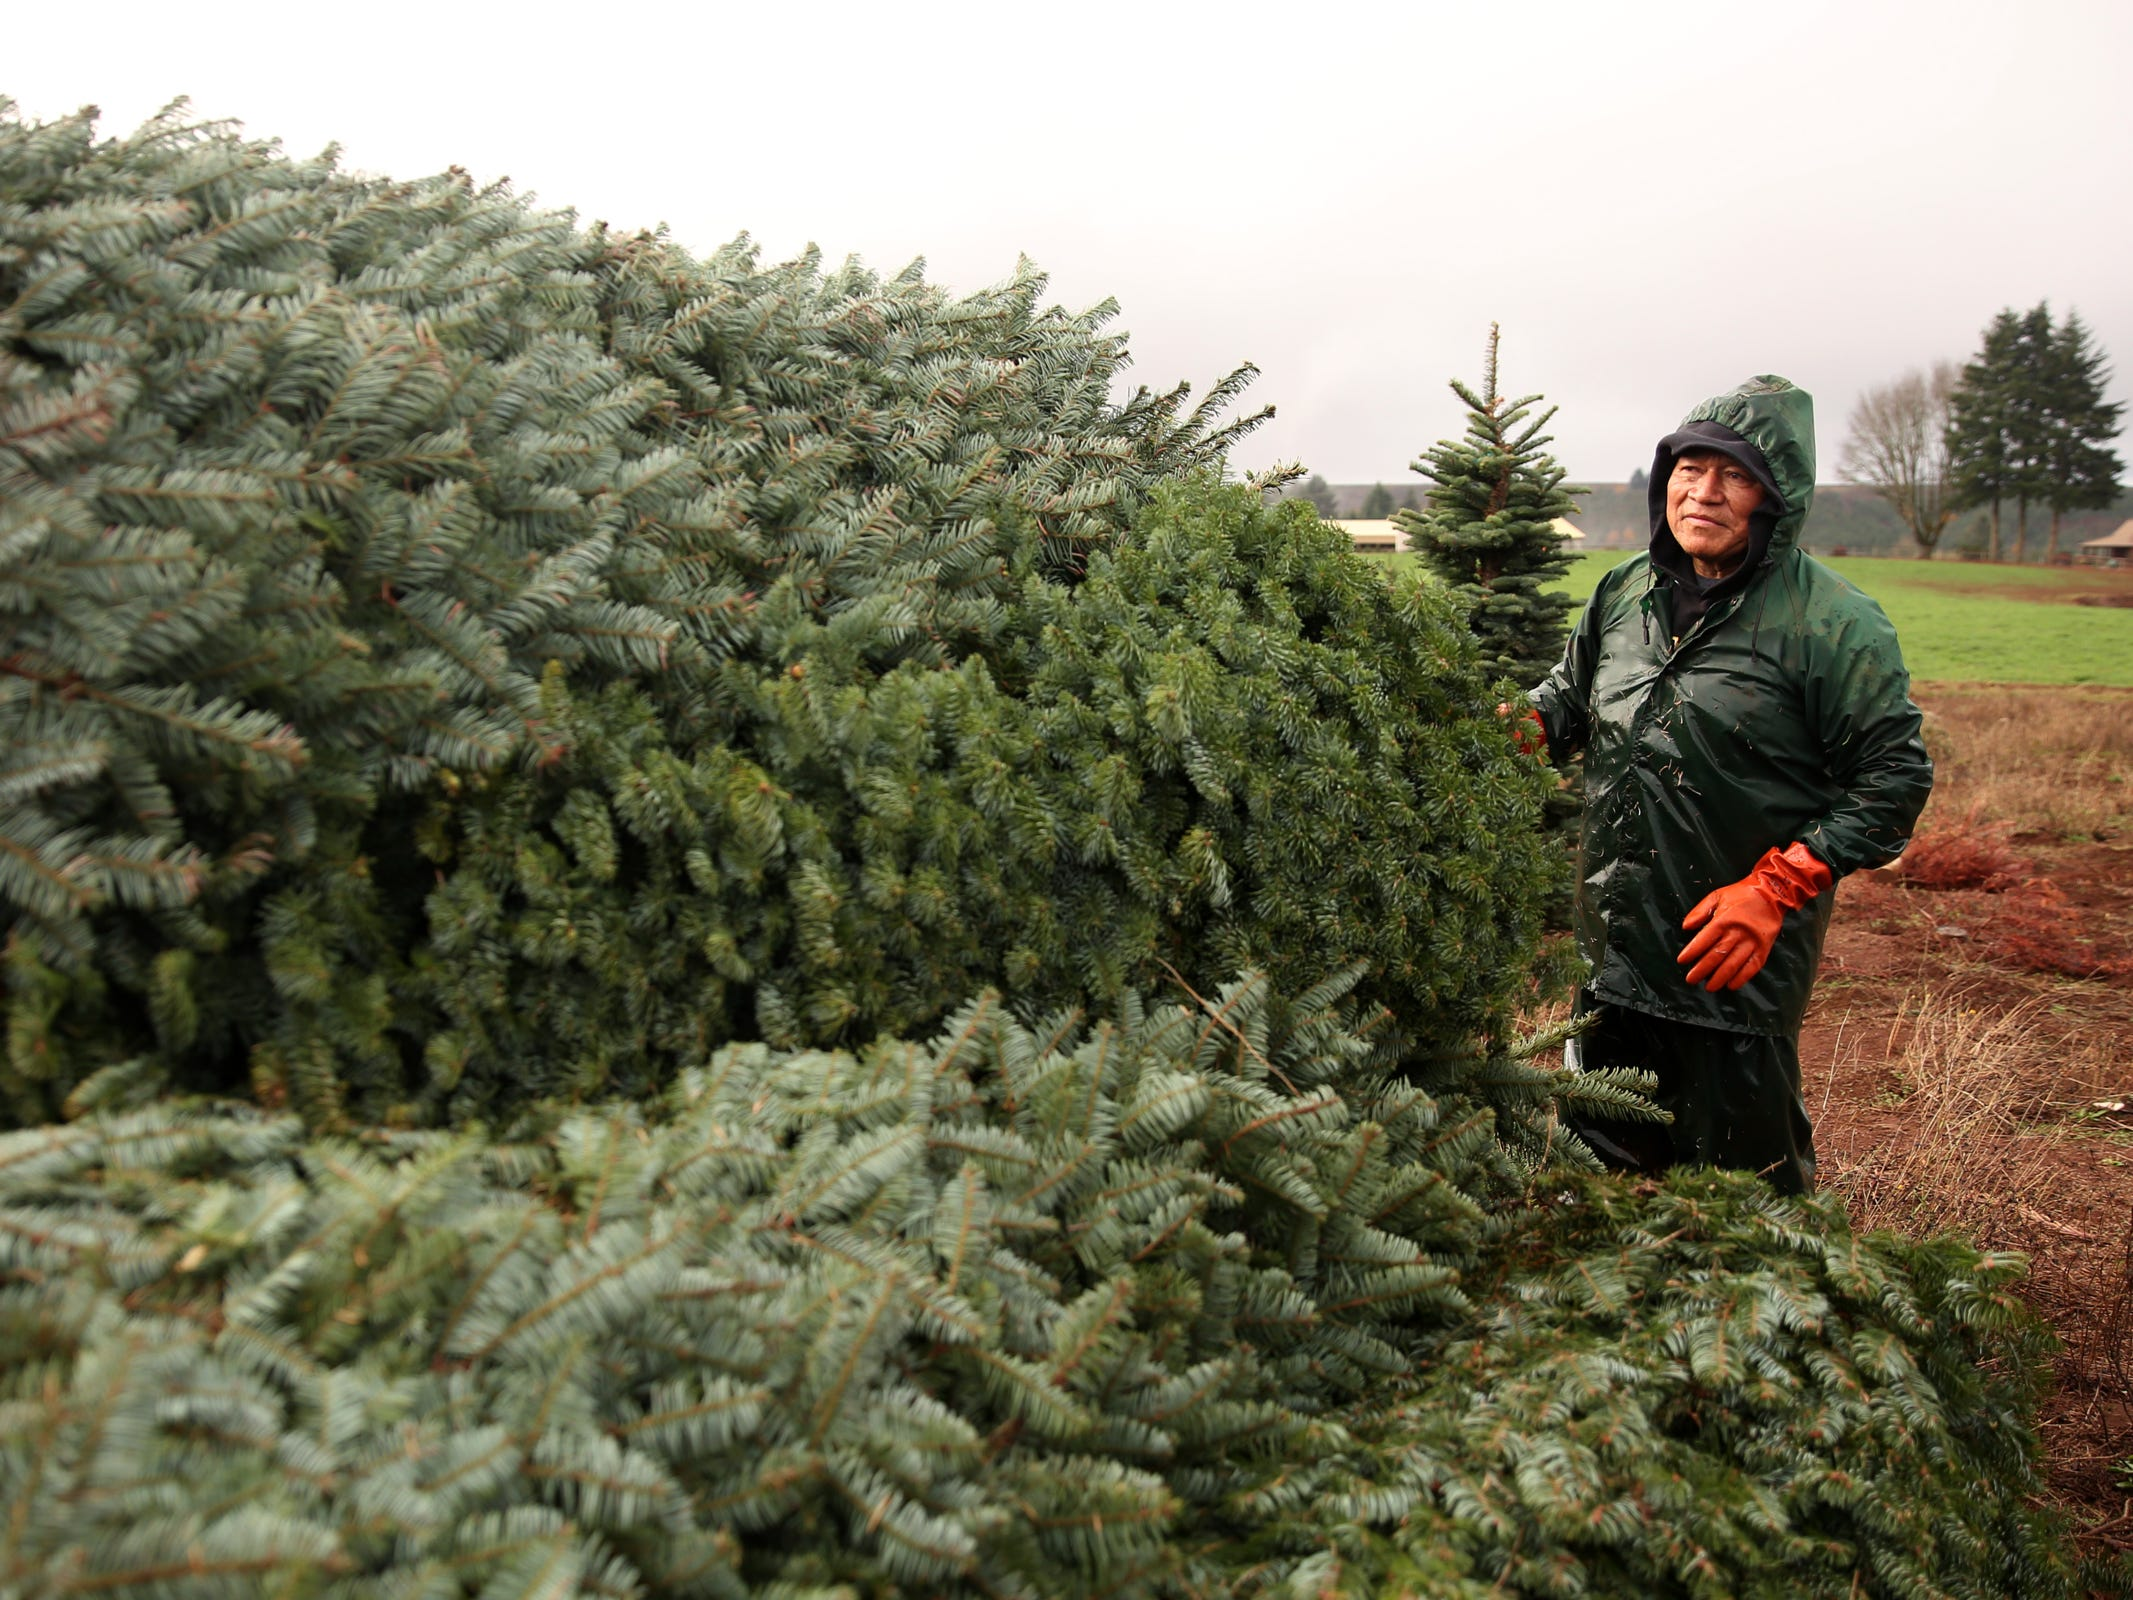 Marcelo Perez, of Brooks, piles harvested Christmas trees to prepare them for delivery at Hupp Farms near Silverton on Monday, Nov. 5, 2018.